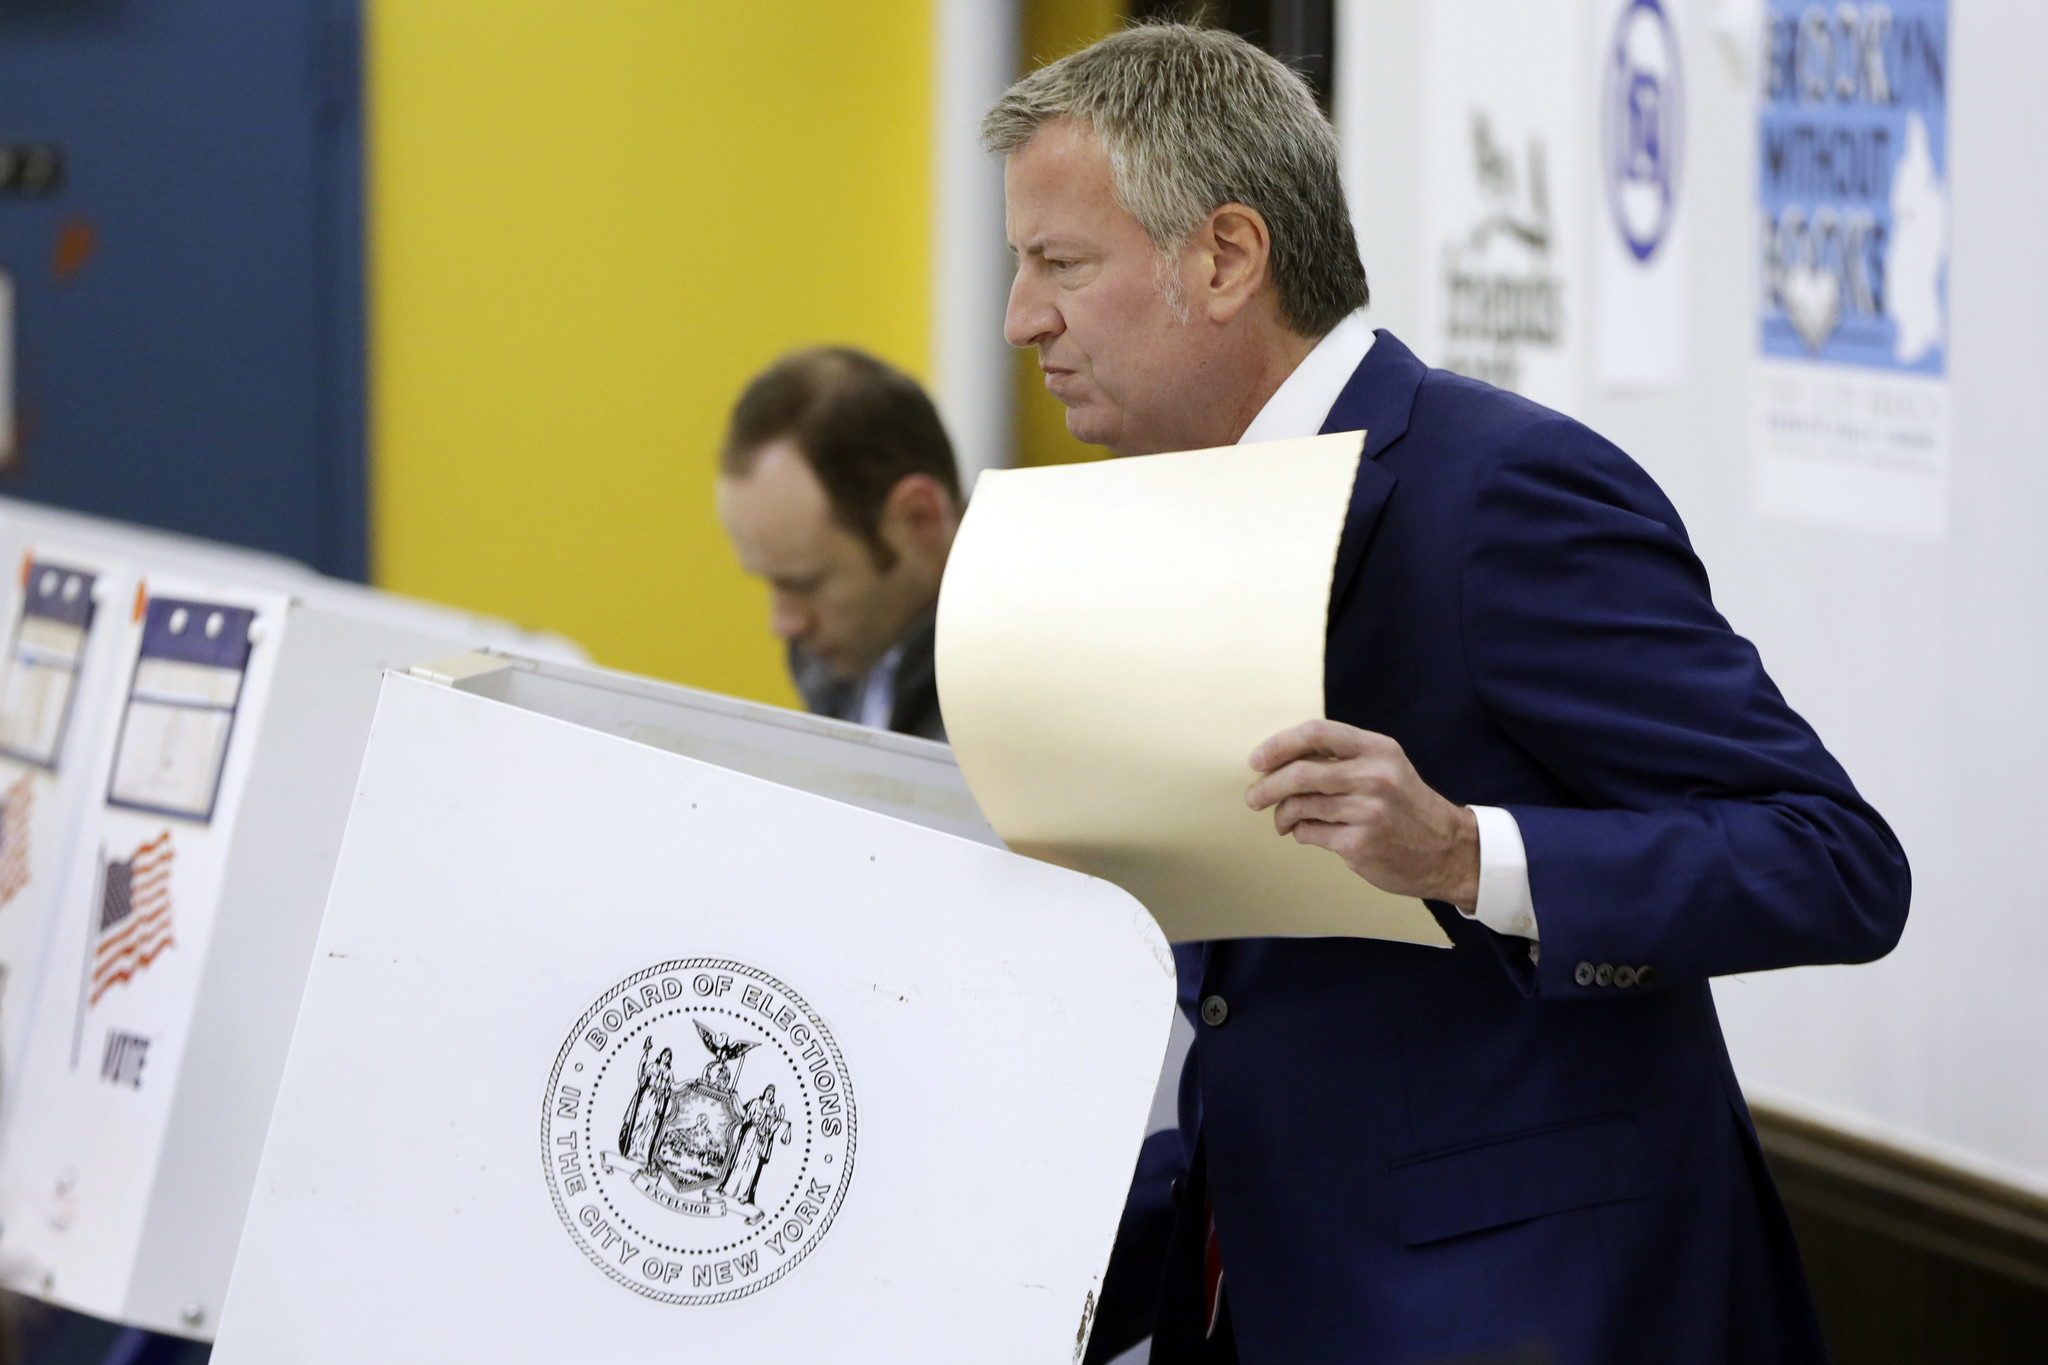 Mayor de Blasio's new democracy office could be suppressing voter turnout